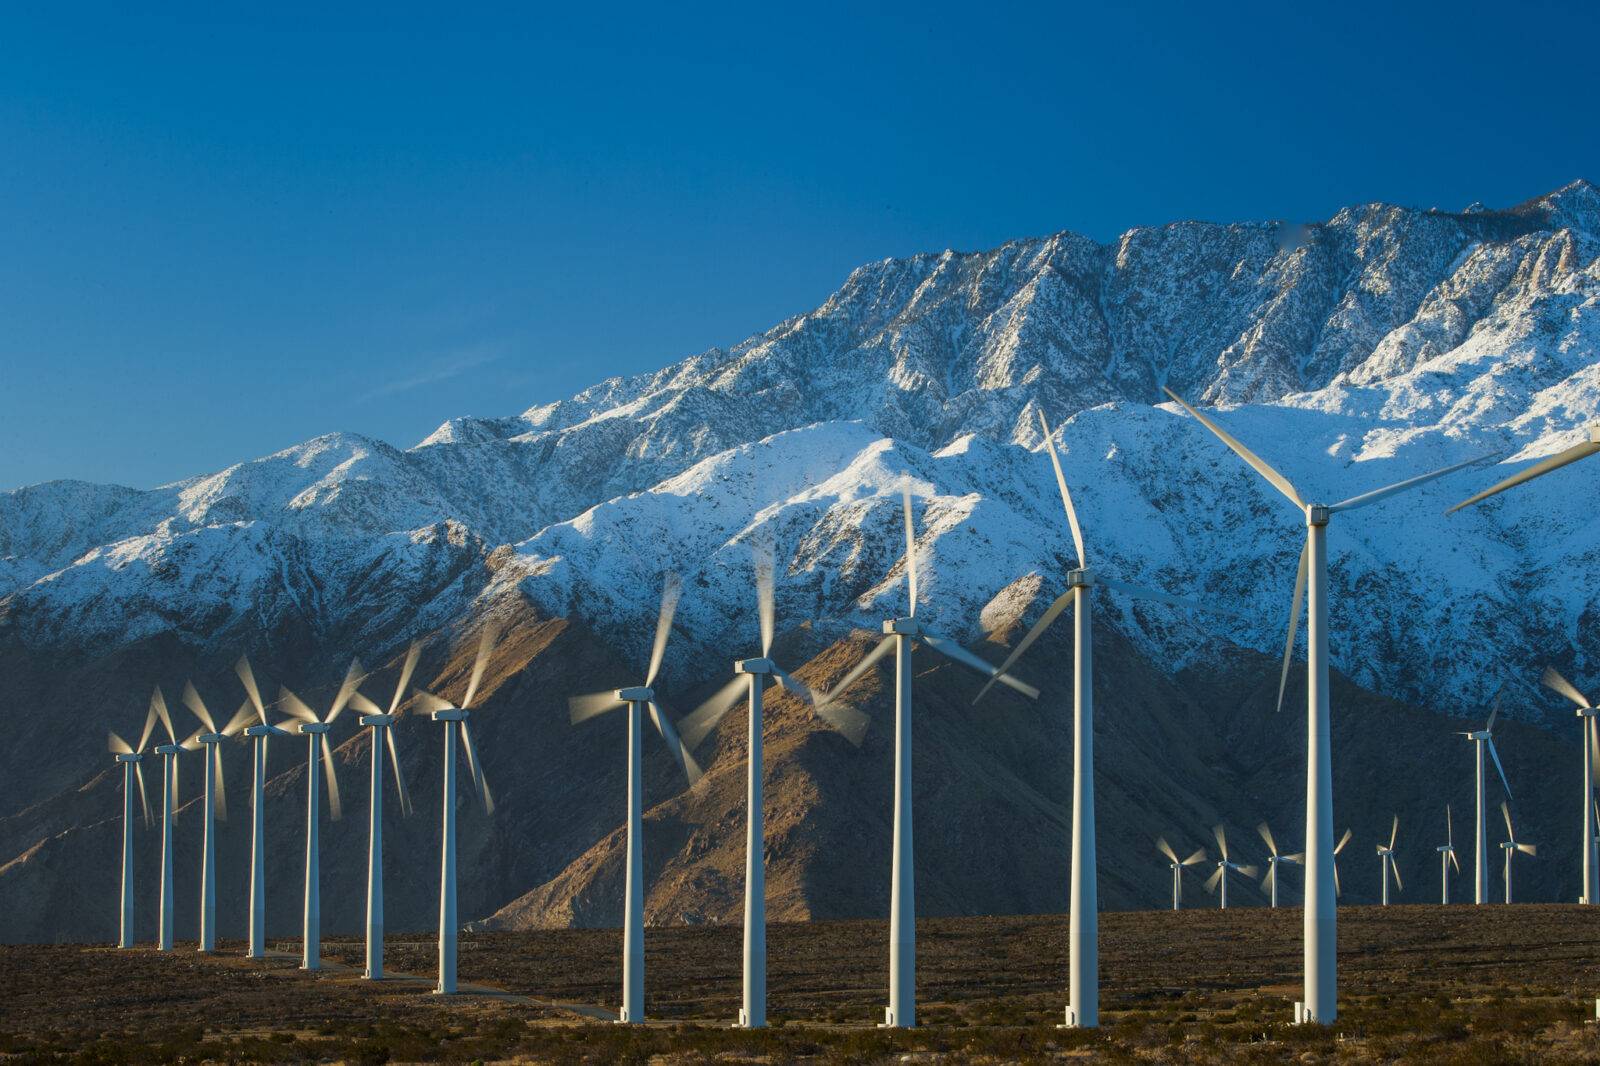 california needs policies to protect communities moving to renewable energy